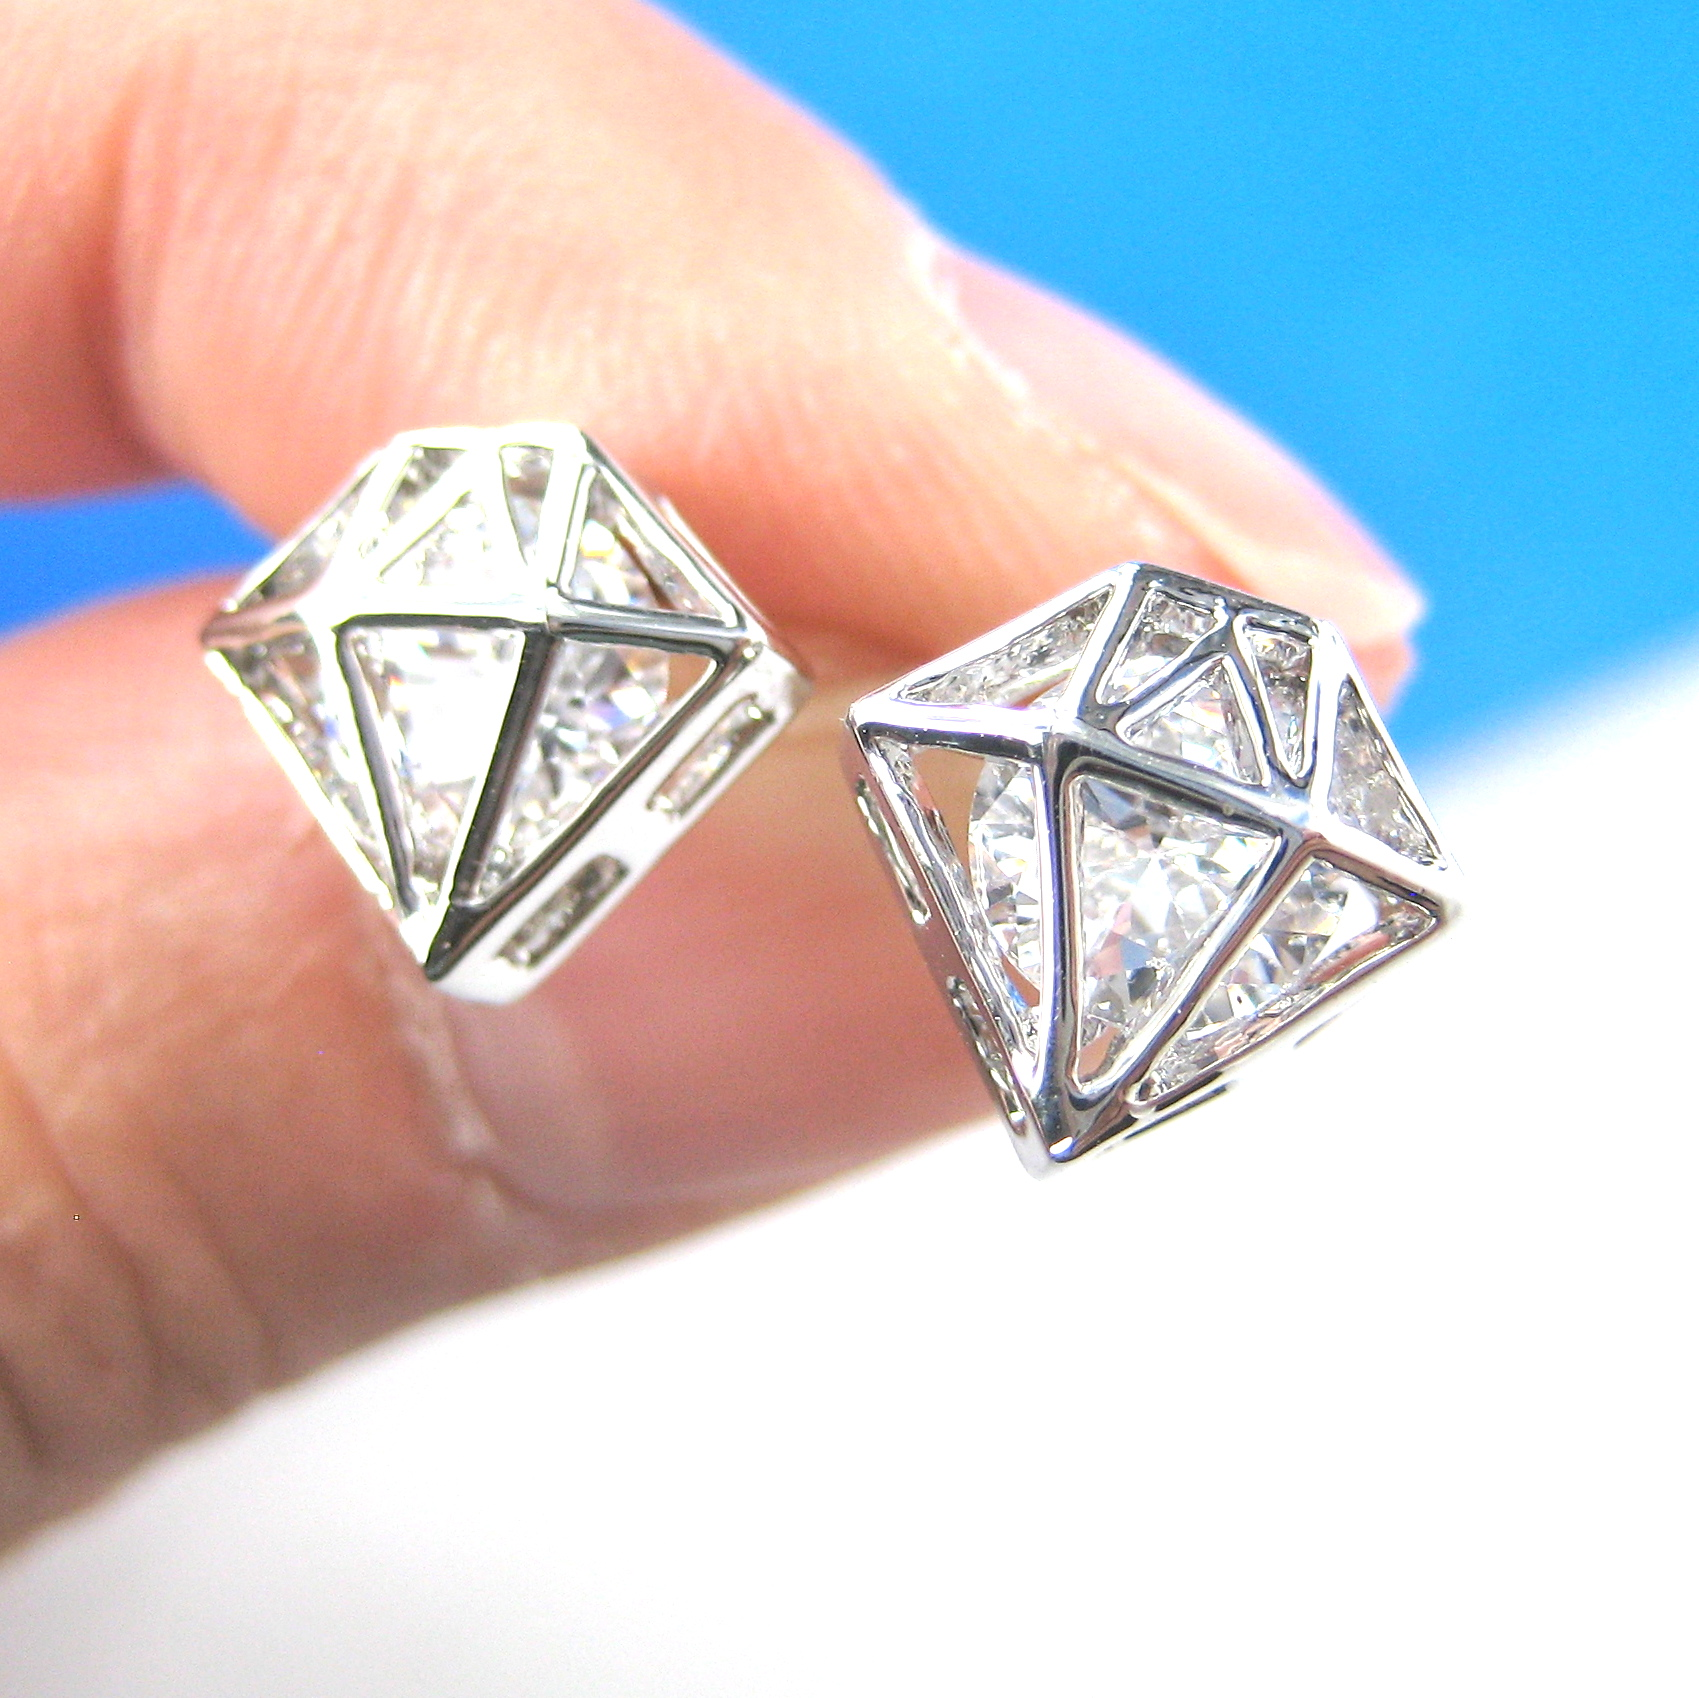 Small 3d Diamond Shaped Rhinestone Shiny Bling Stud Earrings In Silver   Thumbnail 1